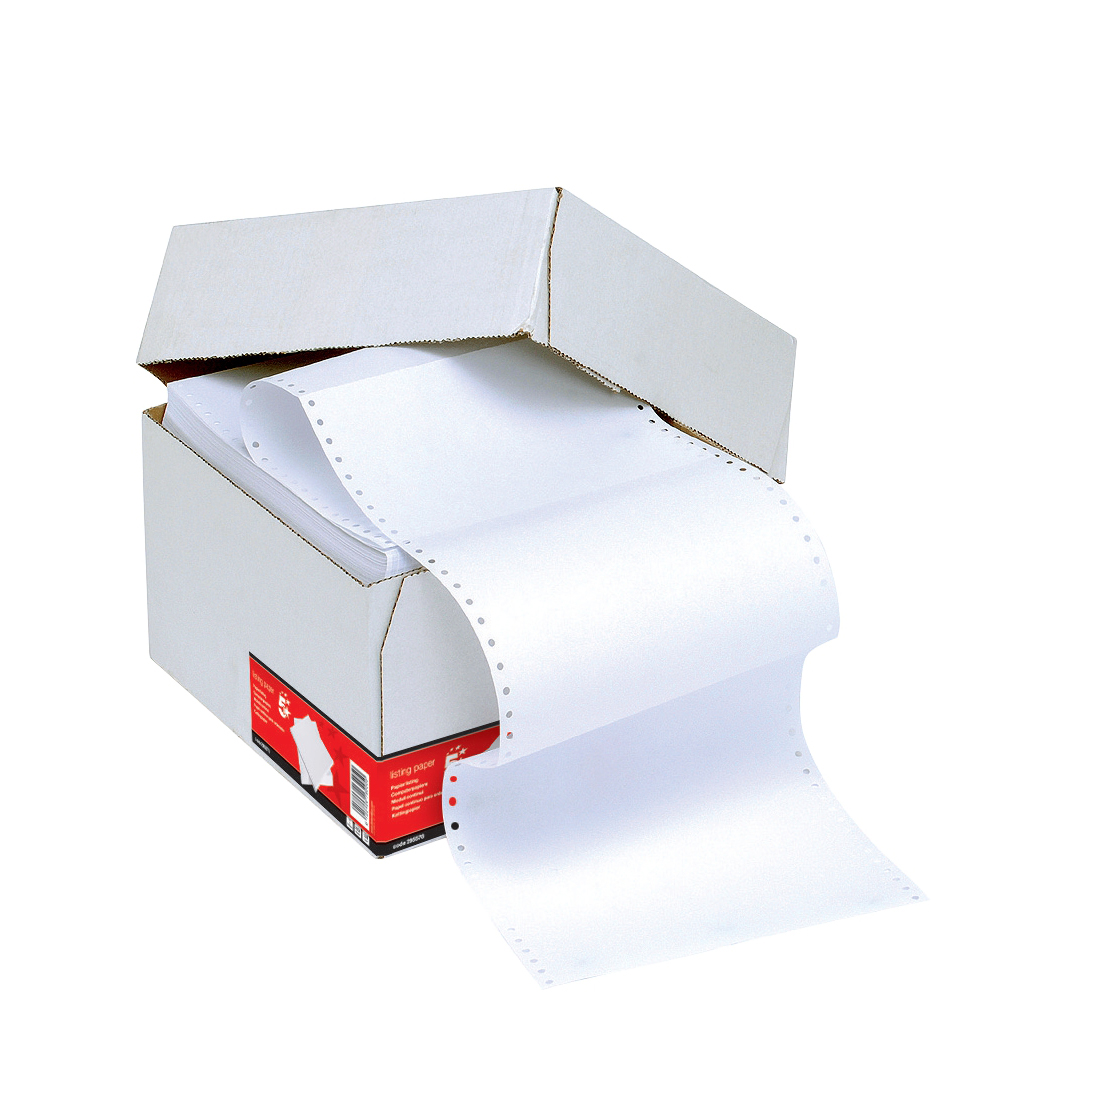 Listing Paper 5 Star Office Listing Paper 1-Part Perforated 70gsm 11inchx241mm Plain 2000 Sheets